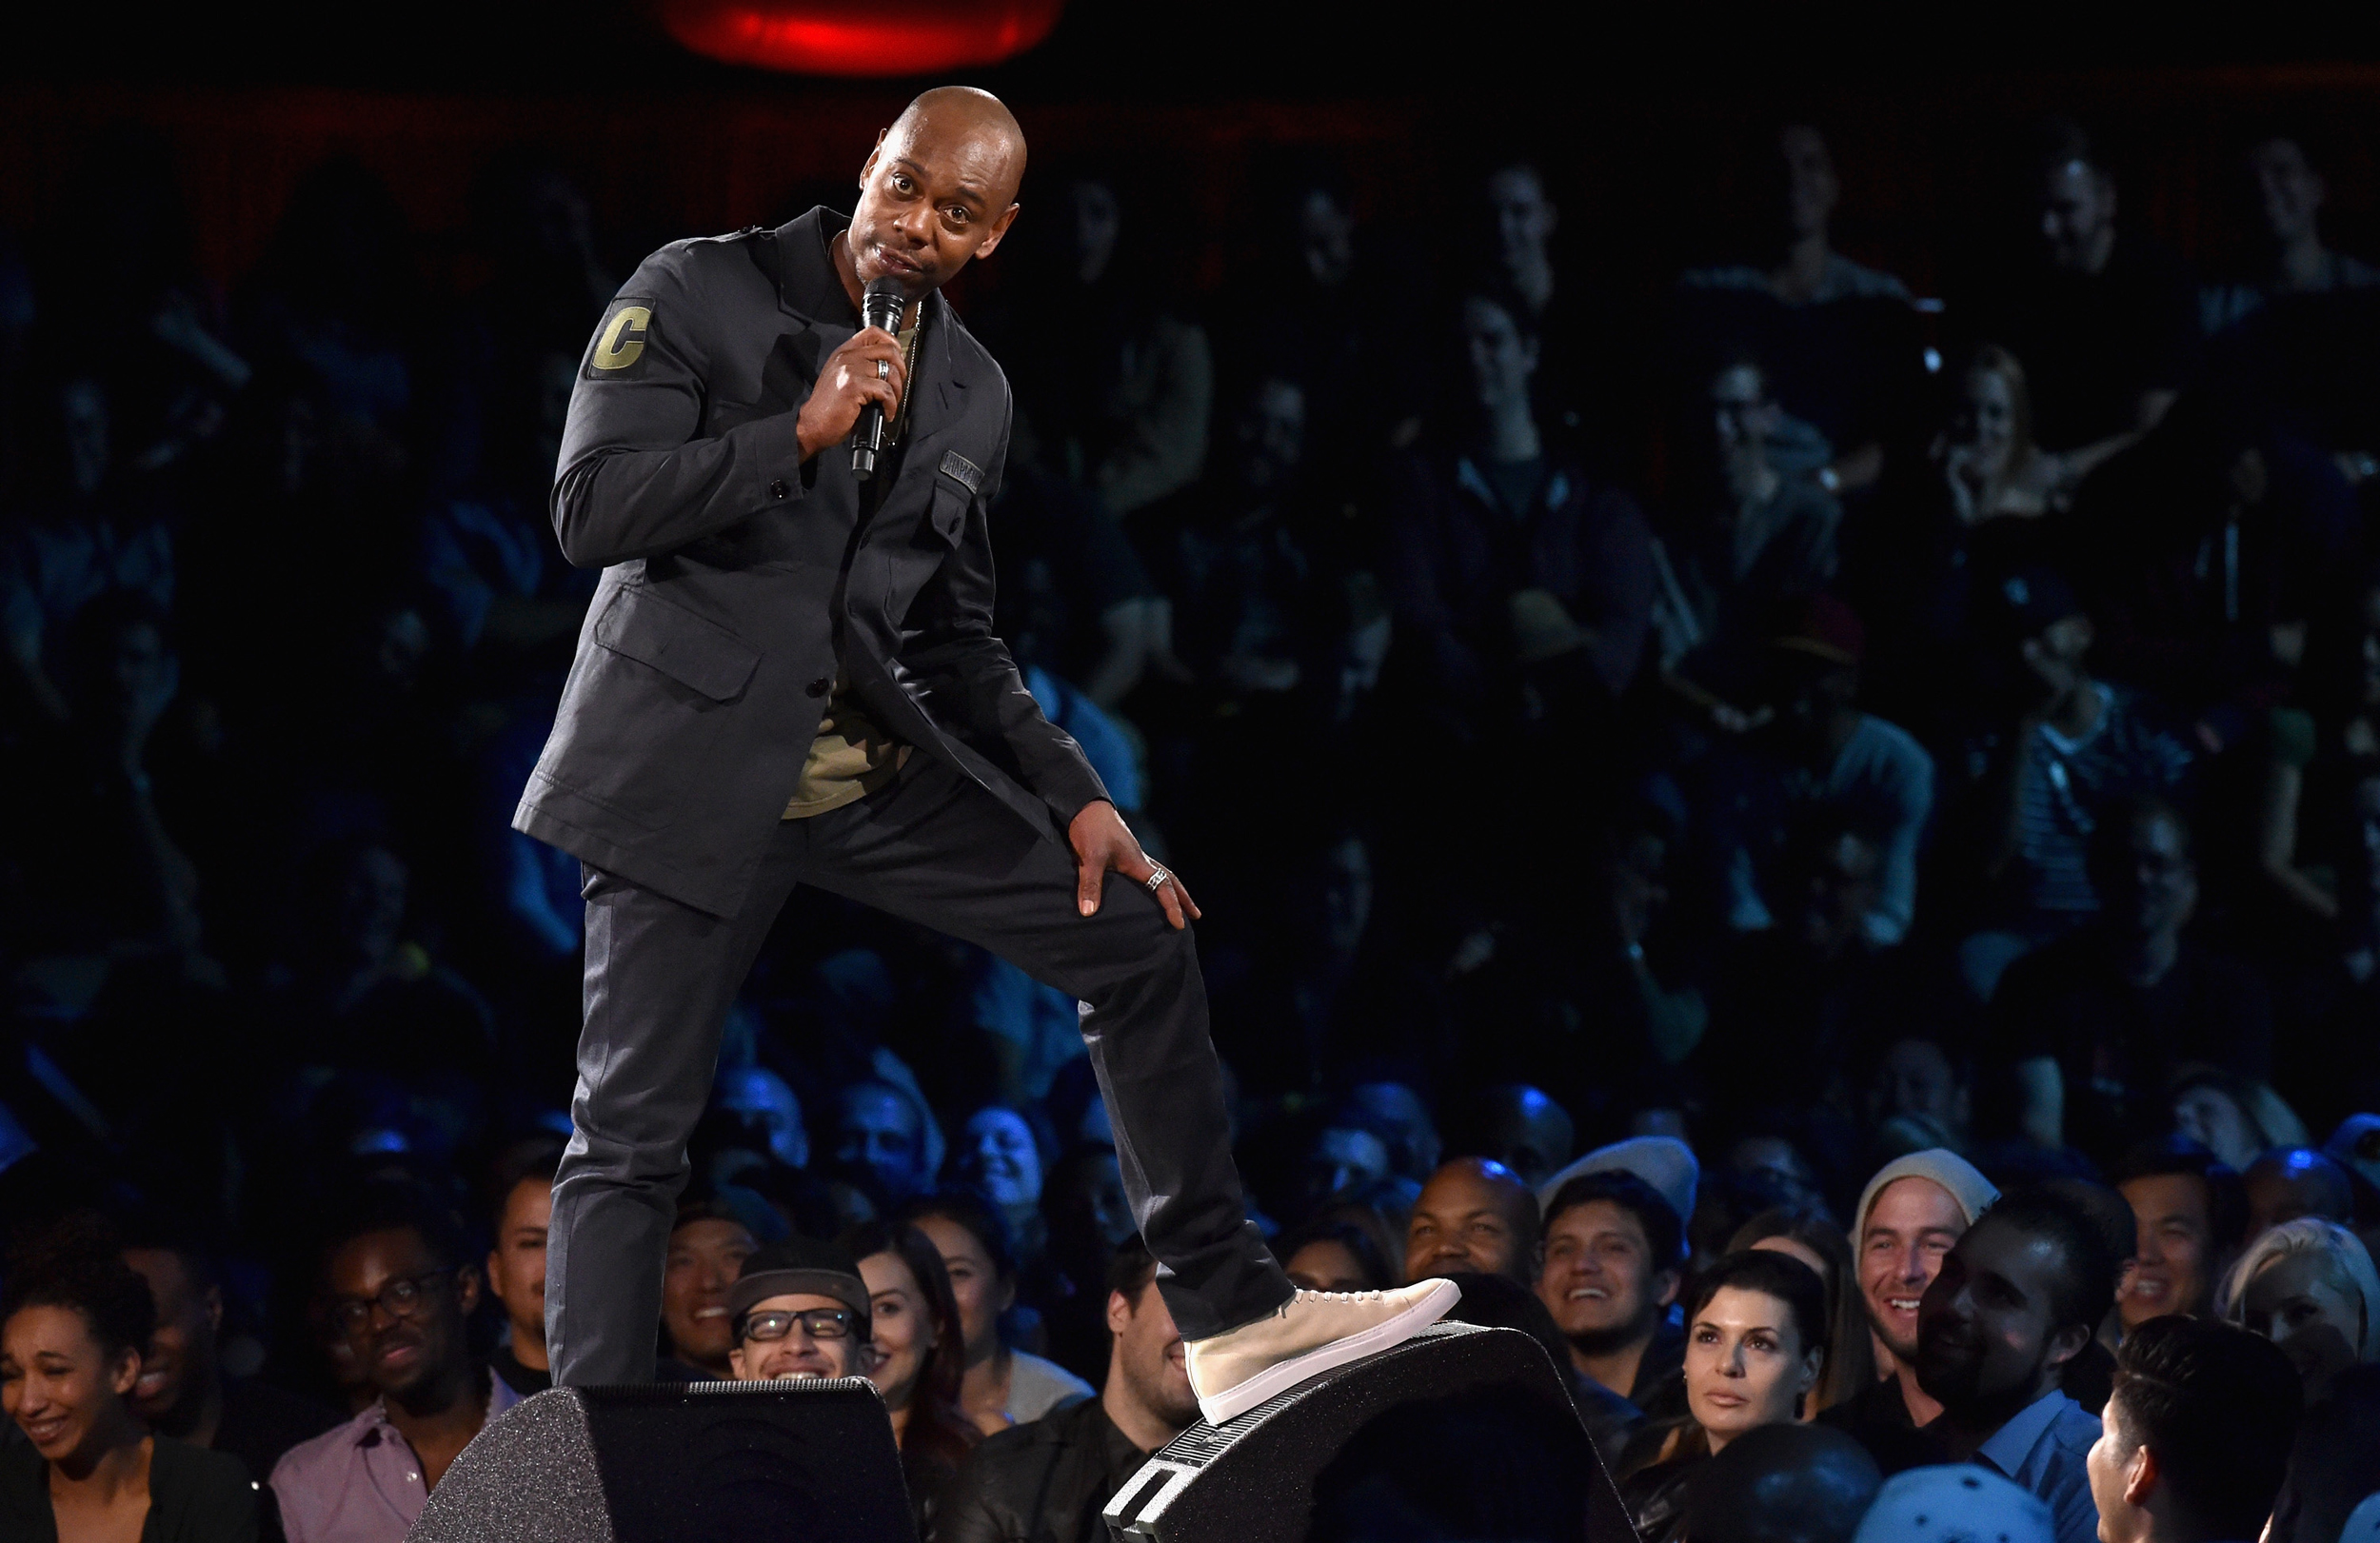 dave chappelle s intimate new netflix specials are brilliant https theundefeated com features dave chappelle netflix specials